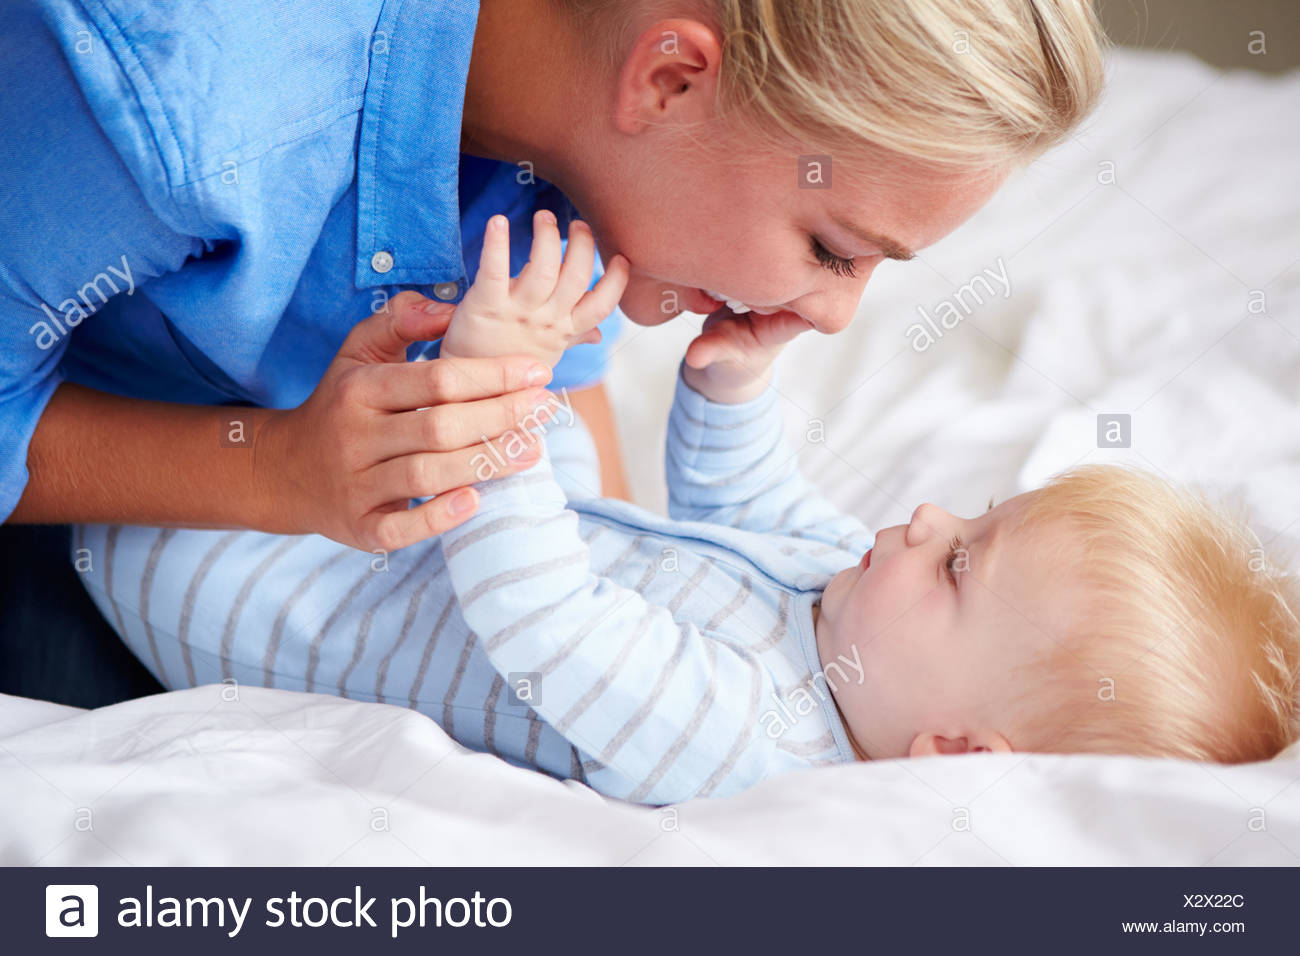 Mother Playing With Baby Son As They Lie In Bed Together - Stock Image